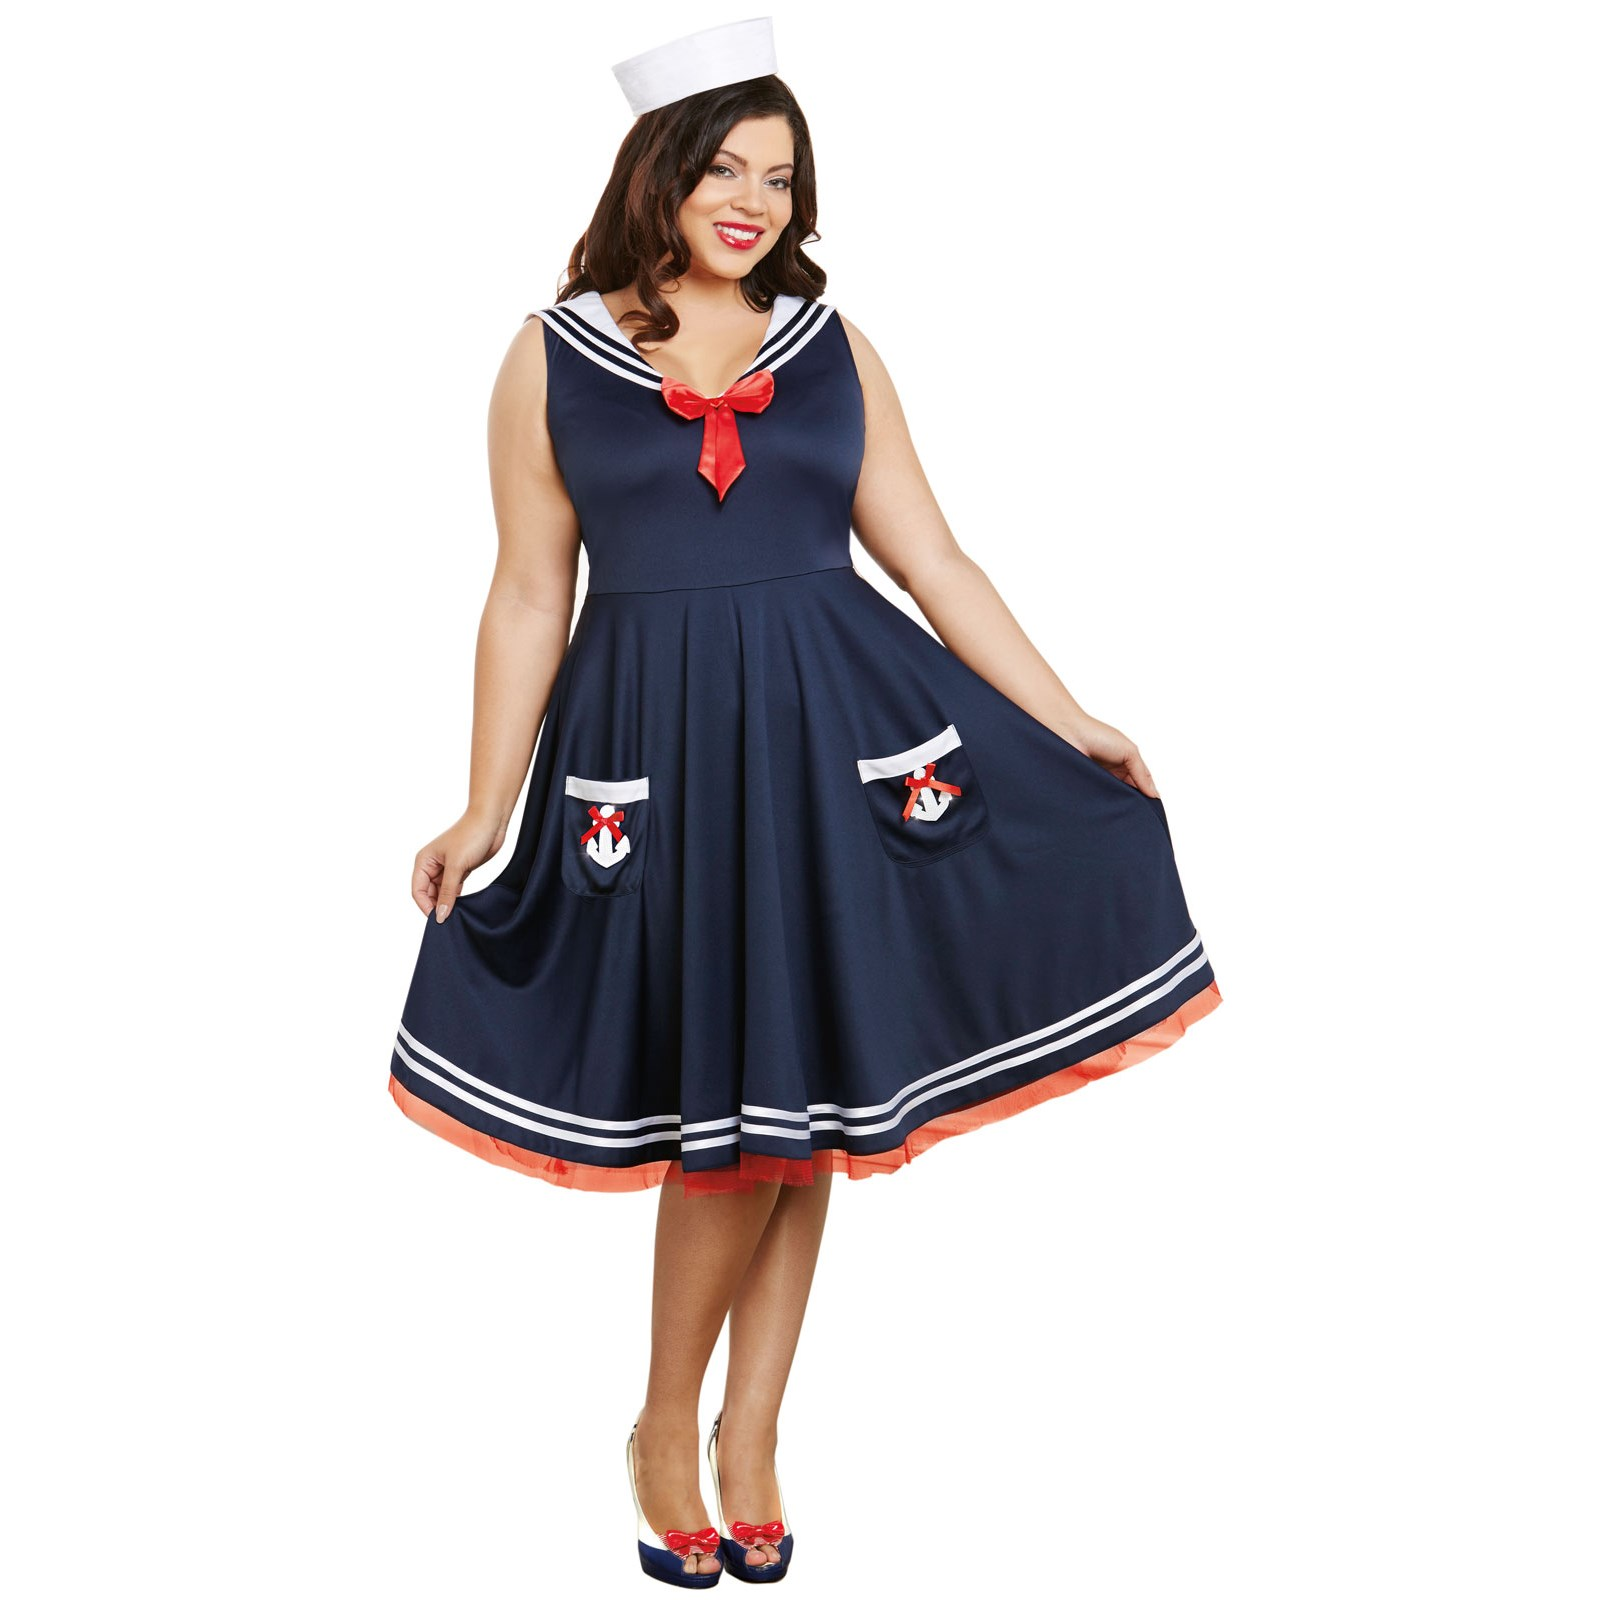 This is an example of a sailor collar. Find this Pin and more on Me by MaKinzie Heggem. I just want an adorable sailor dress Again, nautical is a winner. This is a really cute statement dress.